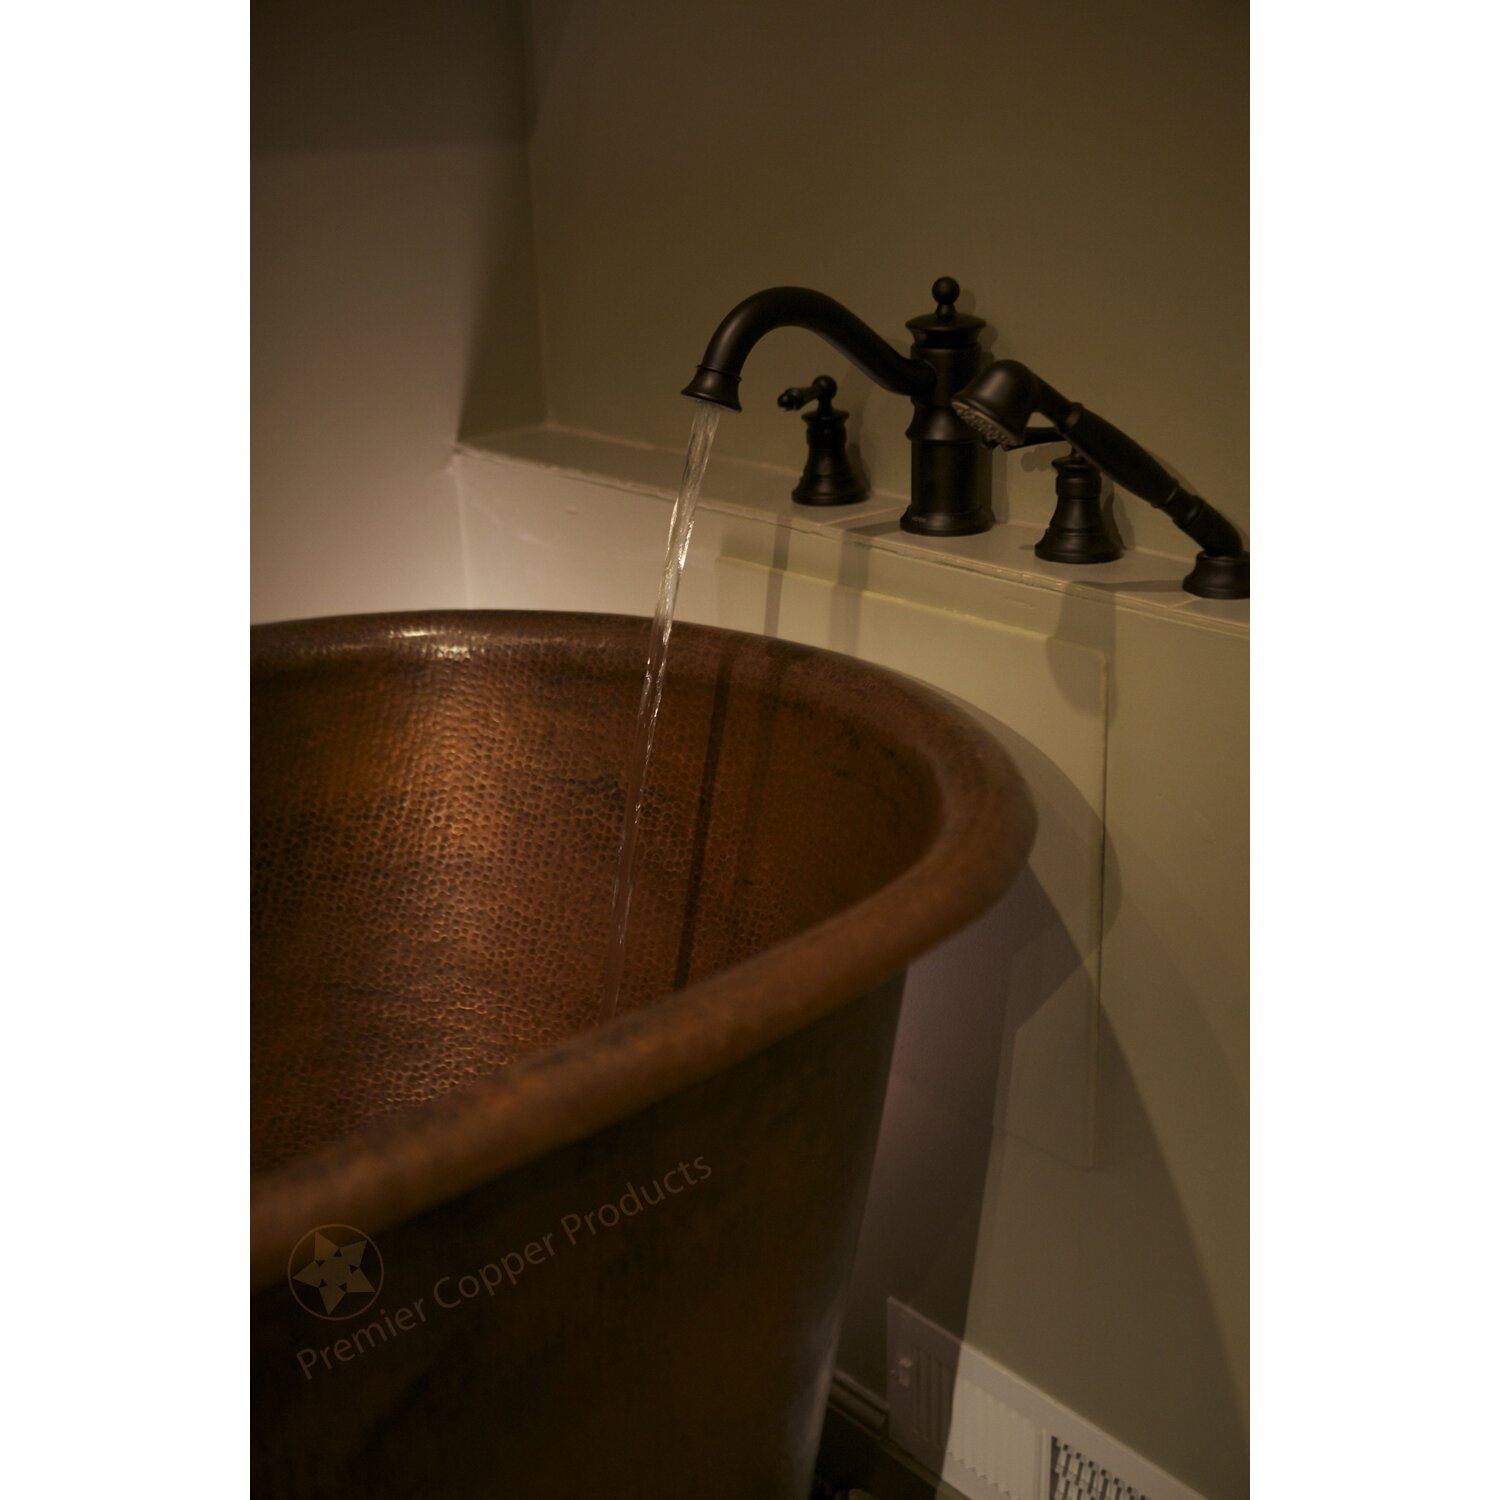 Awesome Copper Bathtub Pros And Cons Photos - Best Image Engine ...